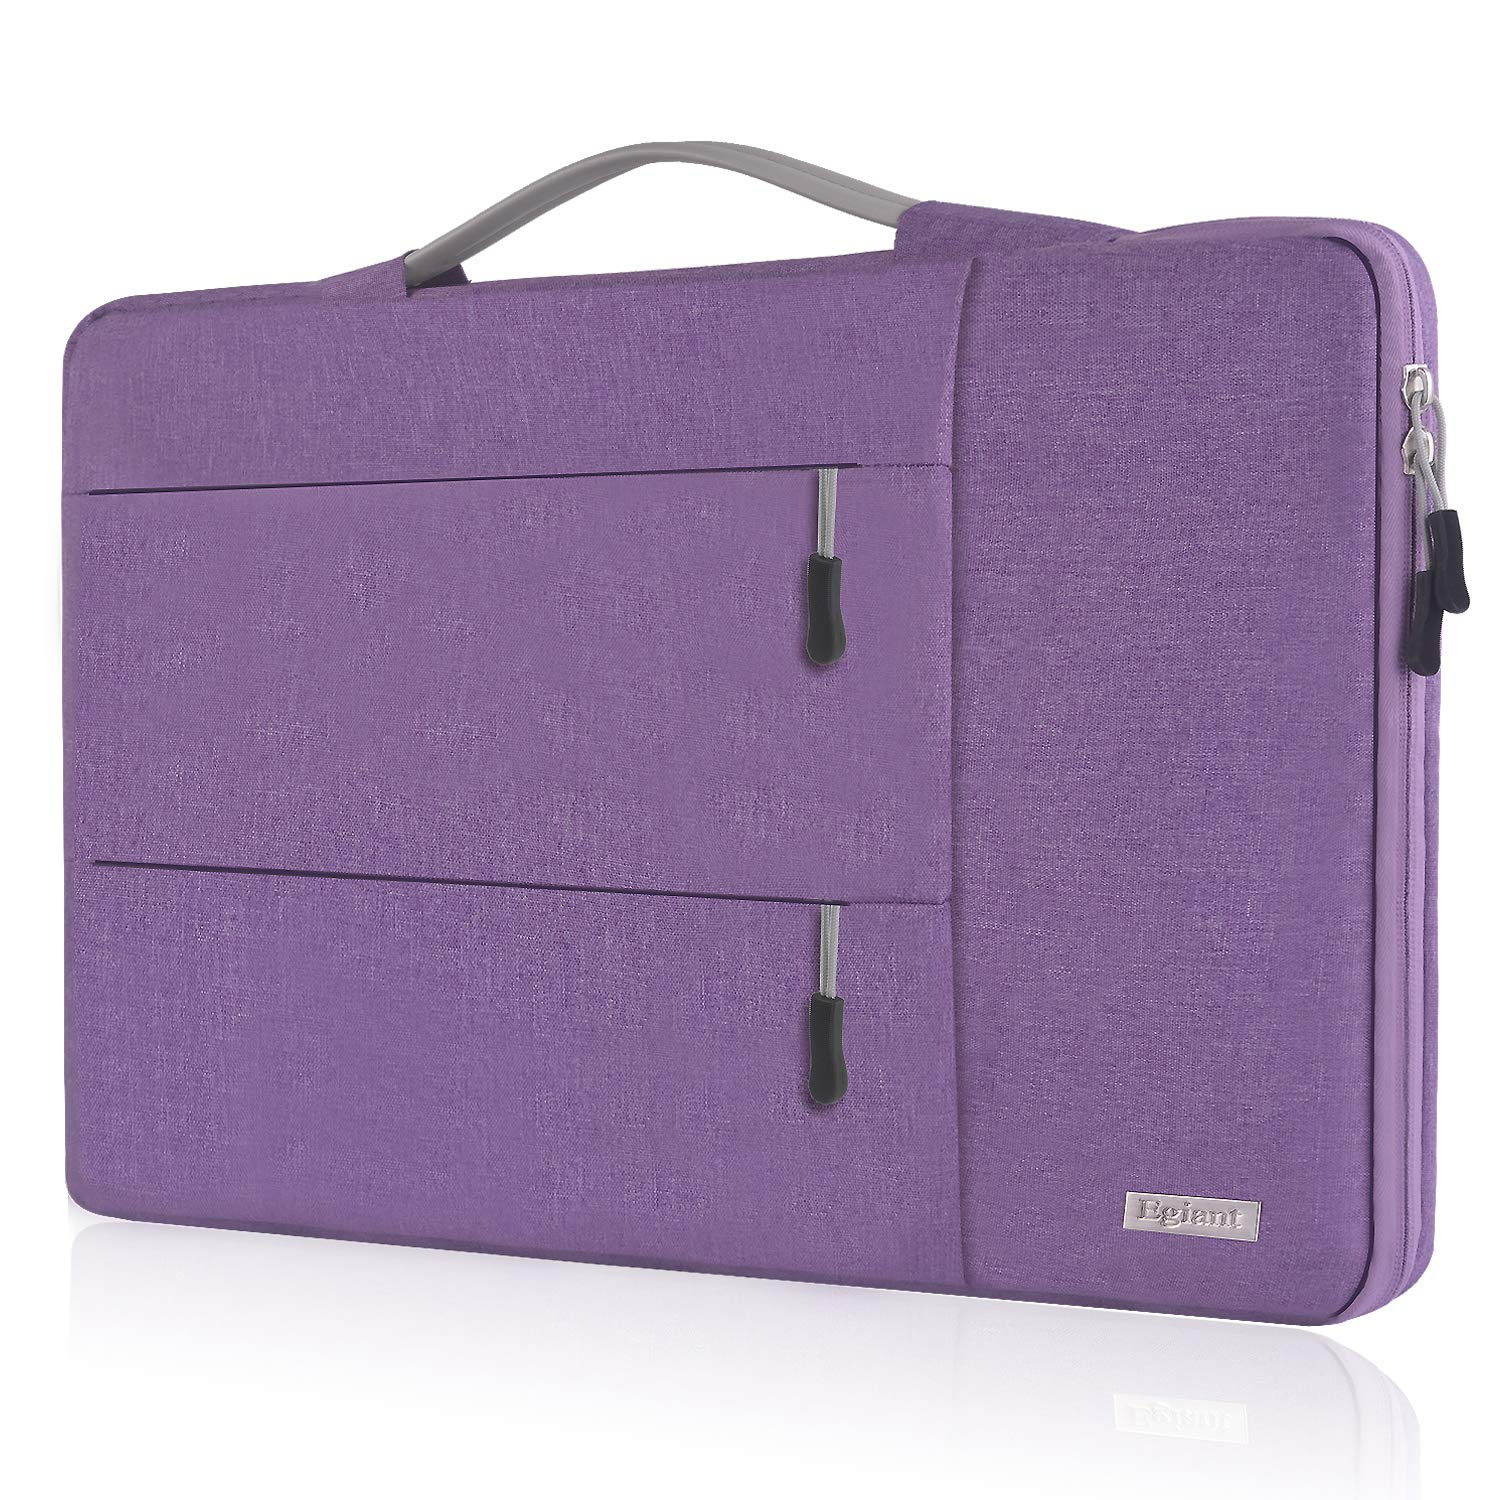 egiant 13.3 Inch Laptop Sleeve,Shock-Proof 360 Protective Handbag for MacBook Air 13,Mac Pro 13 Retina 2012-2015,Surface Book Laptop 3,Water Repellent Notebook Case Bag with 3 Accessory Pocket,Purple